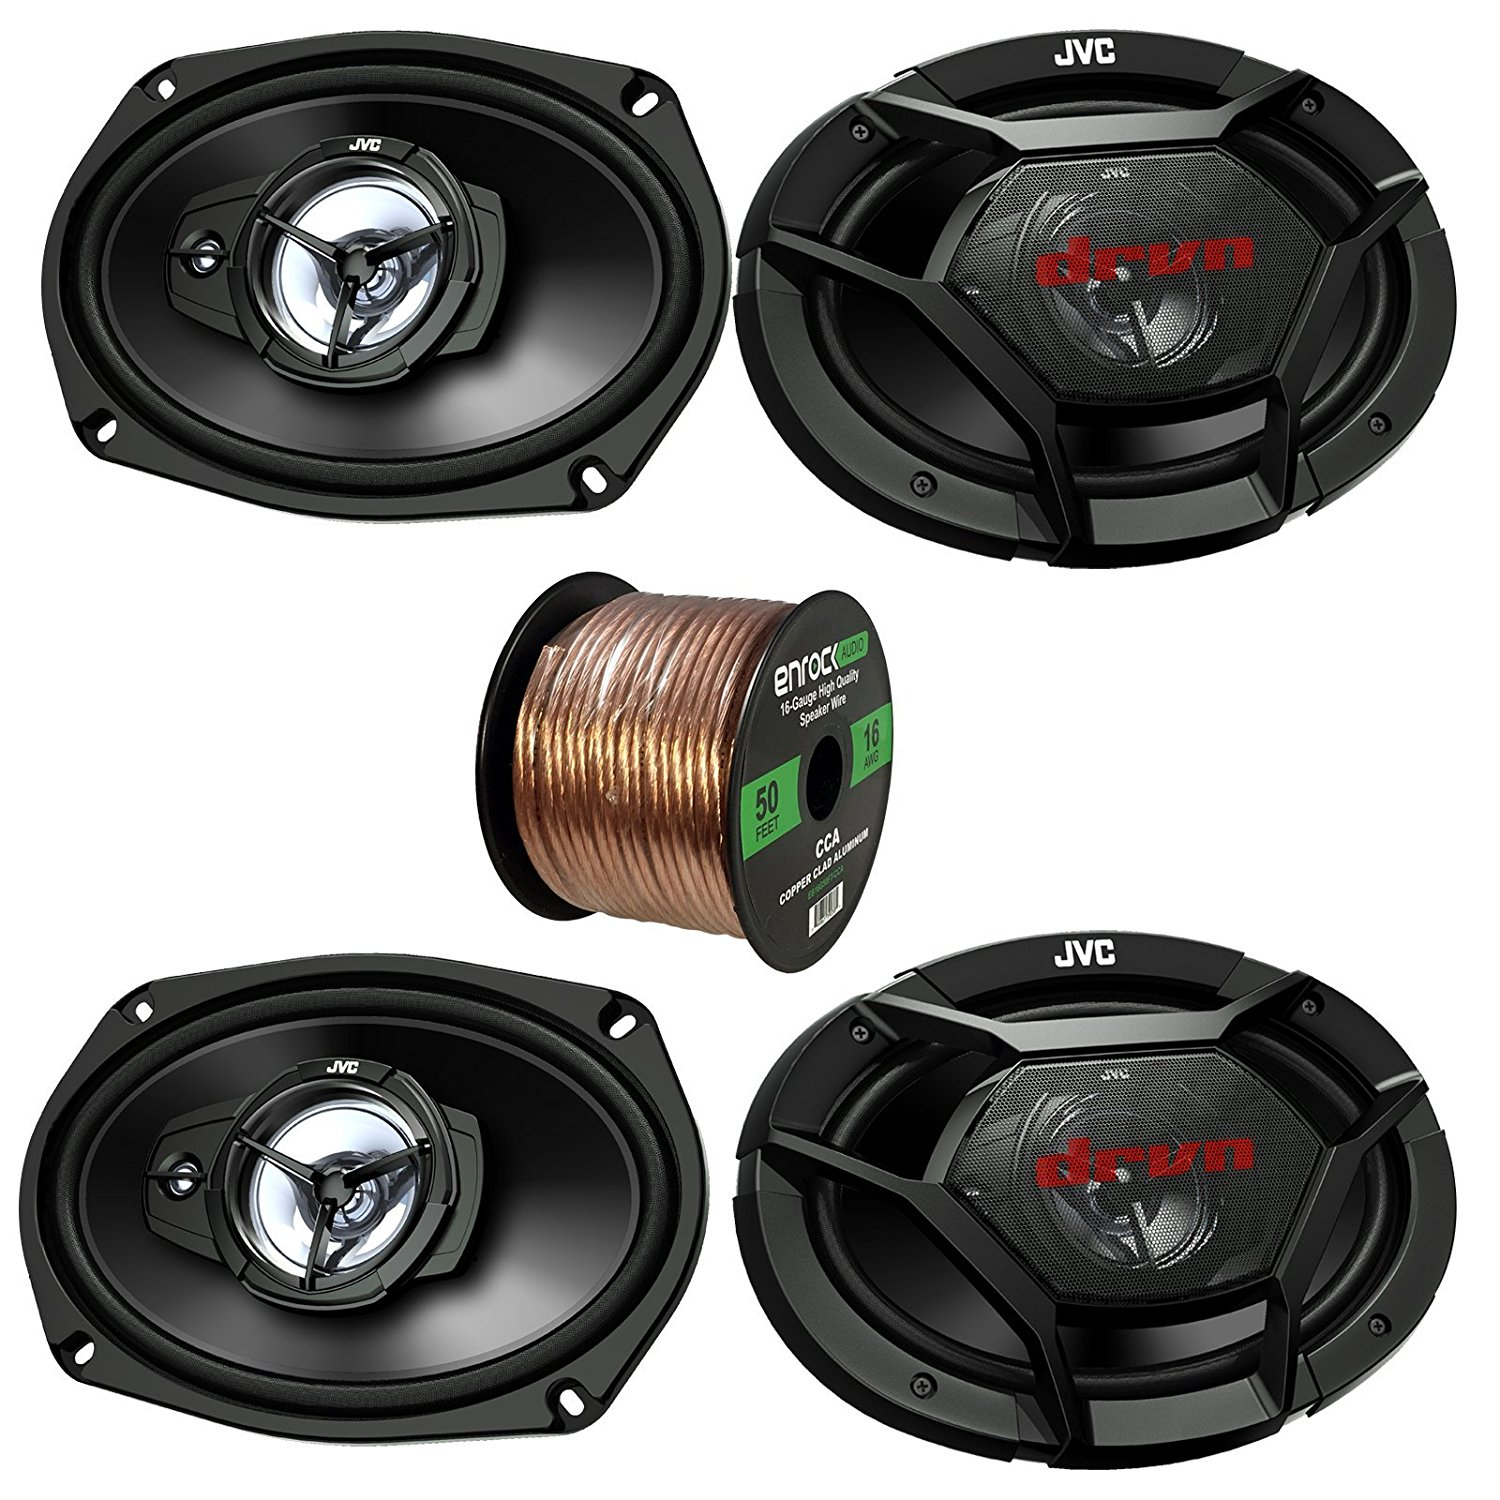 "Car Speaker Package Of 2x JVC CS-DR6930 6""x9"" Inch 1000 Watt 3-Way Vehicle Stereo Coaxial Speakers Bundle Combo With Enrock 50 Foot 16 Gauge Speaker Wire"